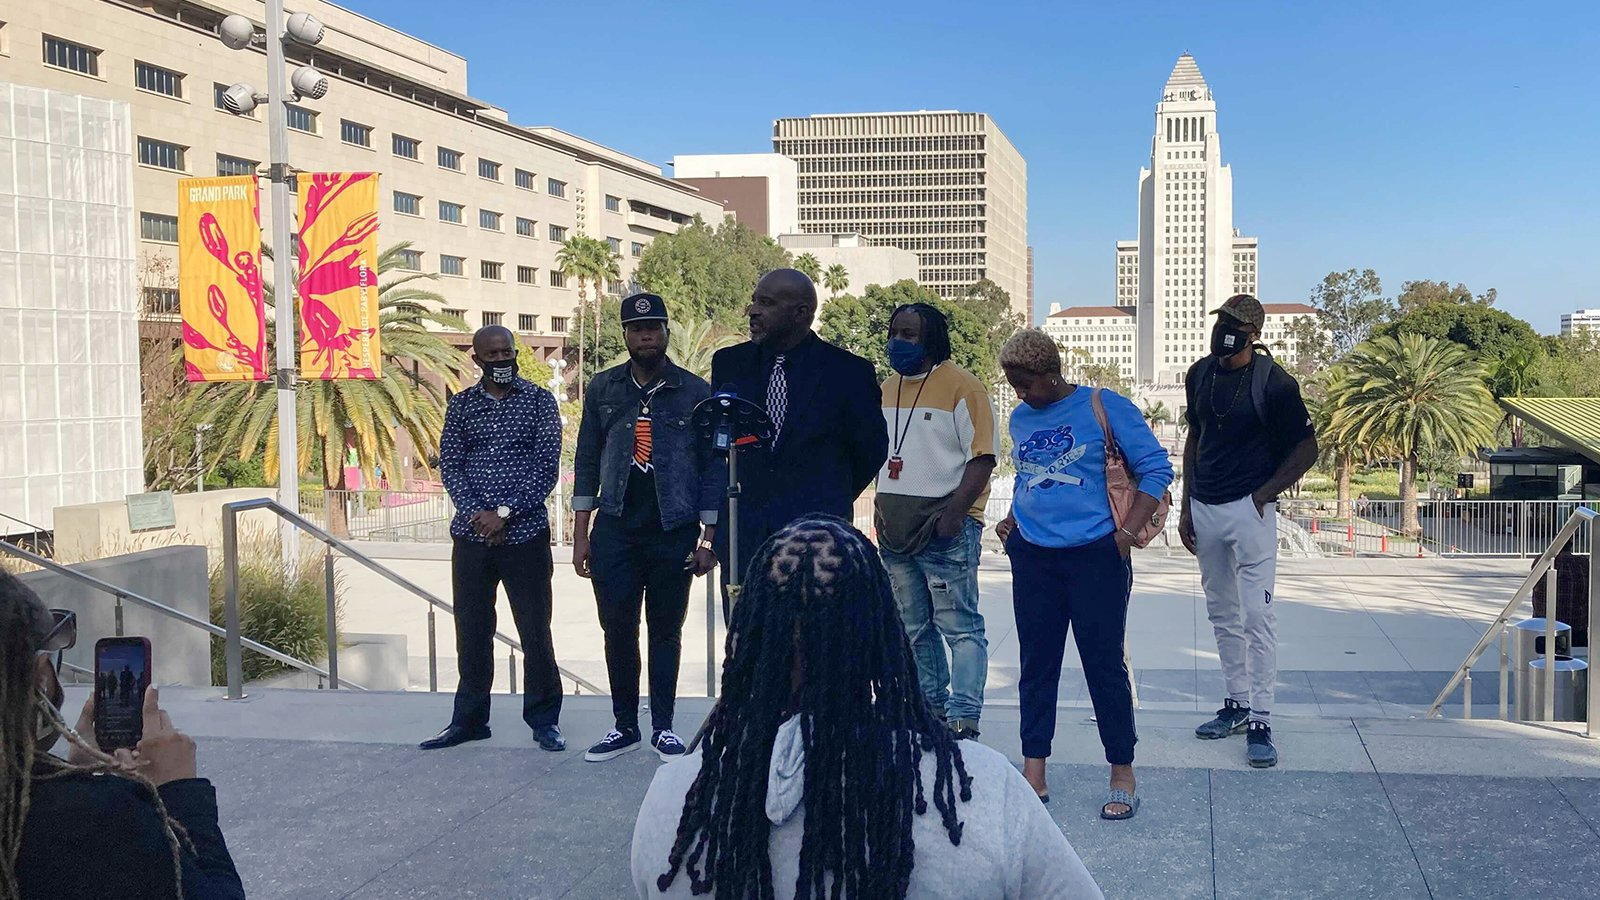 A small group of faith leaders gather at Grand Park, the scene of last summer's Black Lives Matter protests in downtown Los Angeles, to celebrate the guilty verdicts in Derek Chauvin's murder trial, Tuesday, April 20, 2021. RNS photo by Alejandra Molina